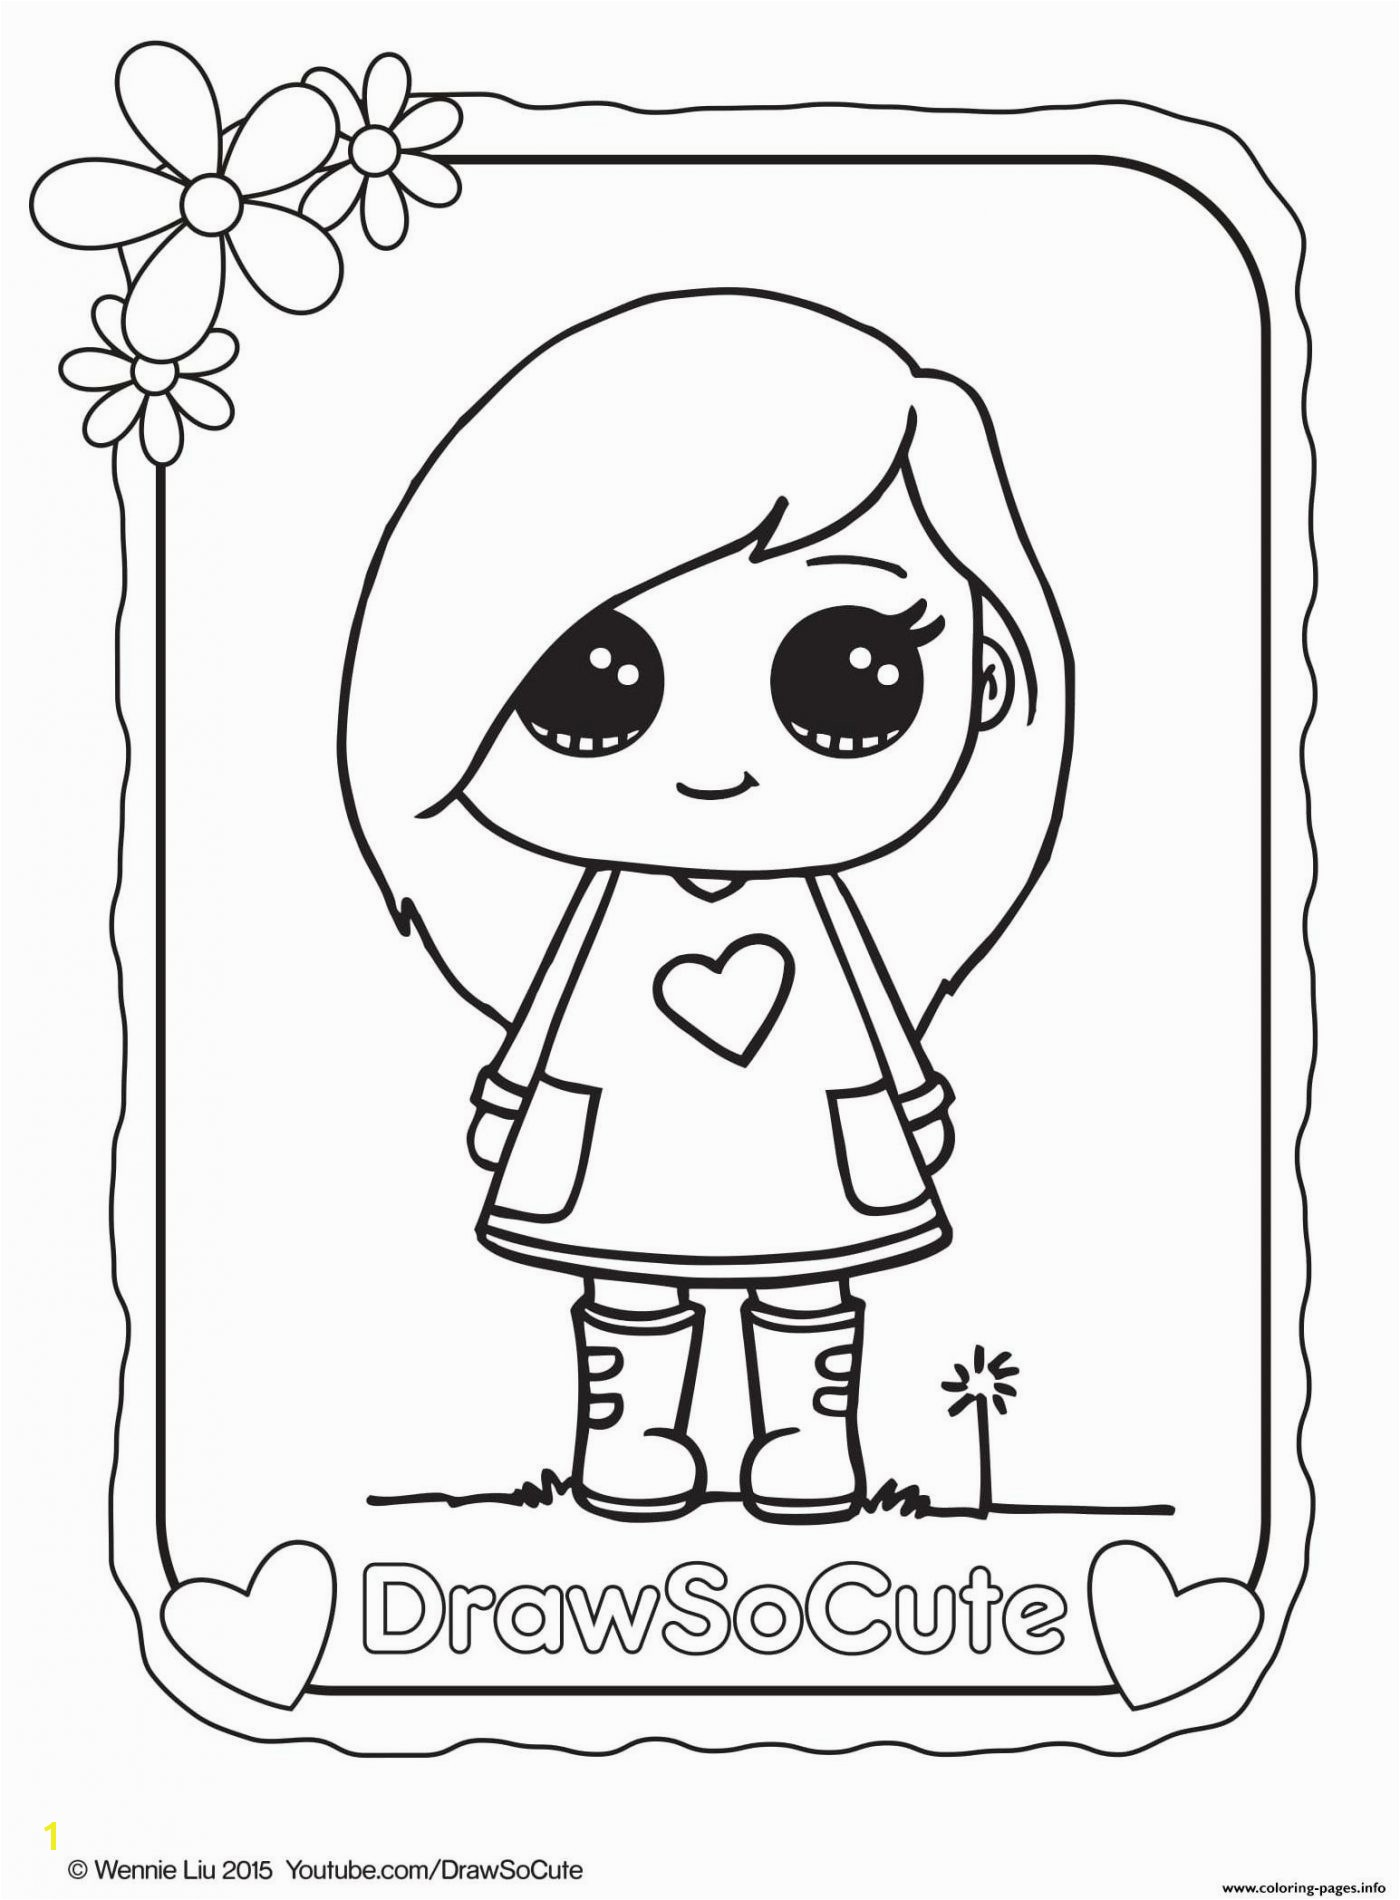 Betty Coloring Pages Elegant Cute Coloring Pages to Print Heathermarxgallery 20 Best Betty Coloring